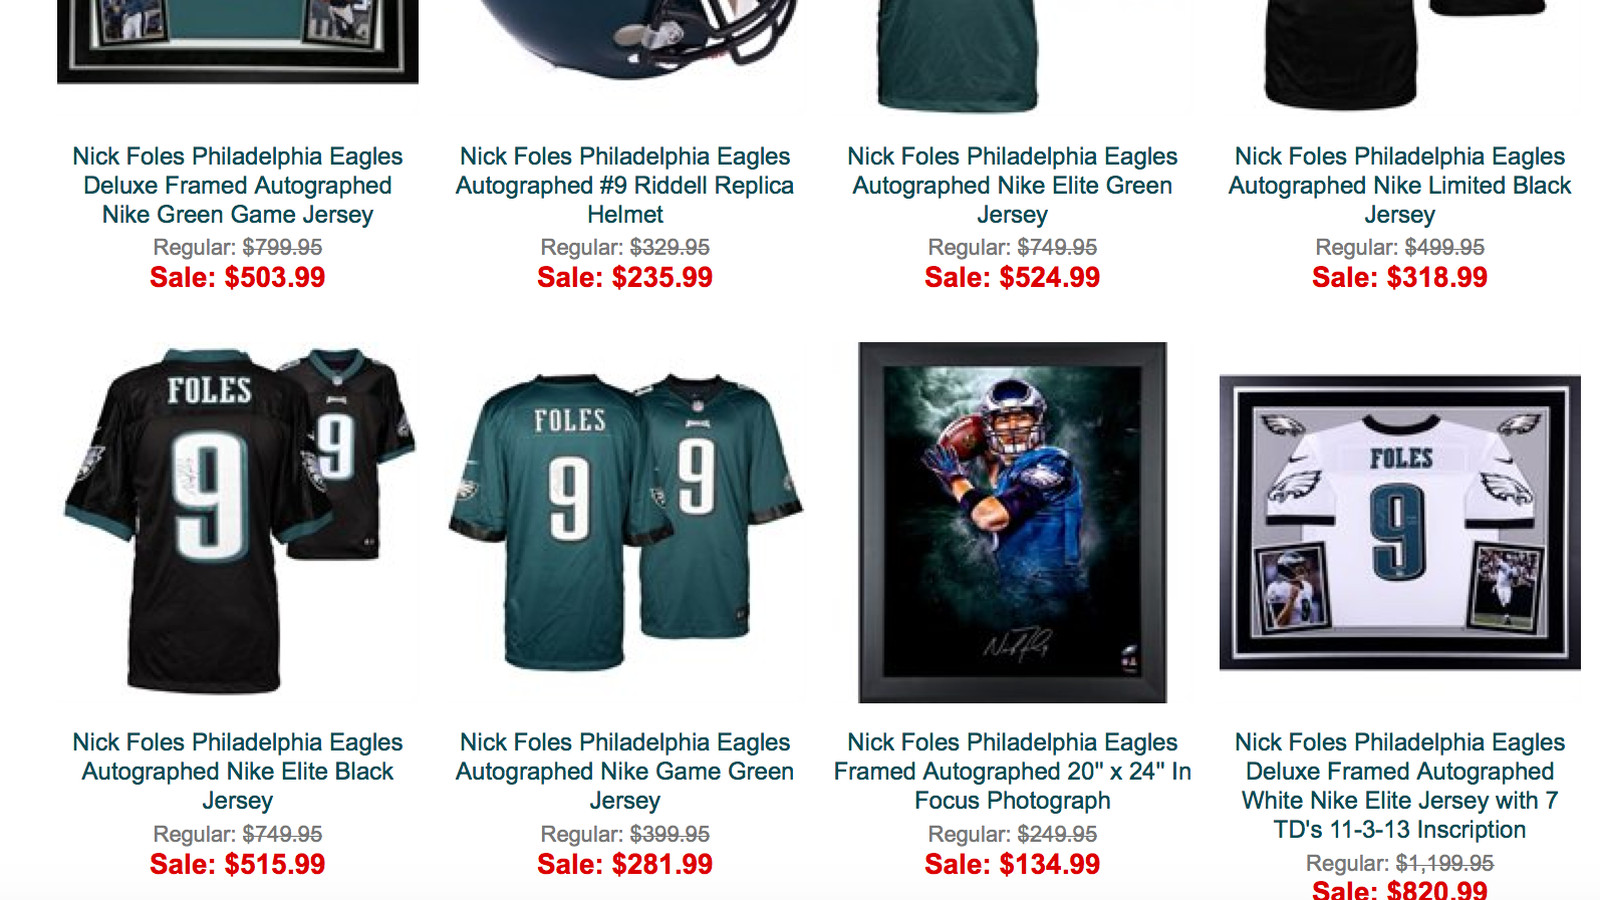 091e2749b23 ... is all Nick Foles autographed merchandise on sale at the Eagles online  store (UPDATE Mens Nike Philadelphia Eagles 9 Nick Foles Elite White NFL  Jersey ...